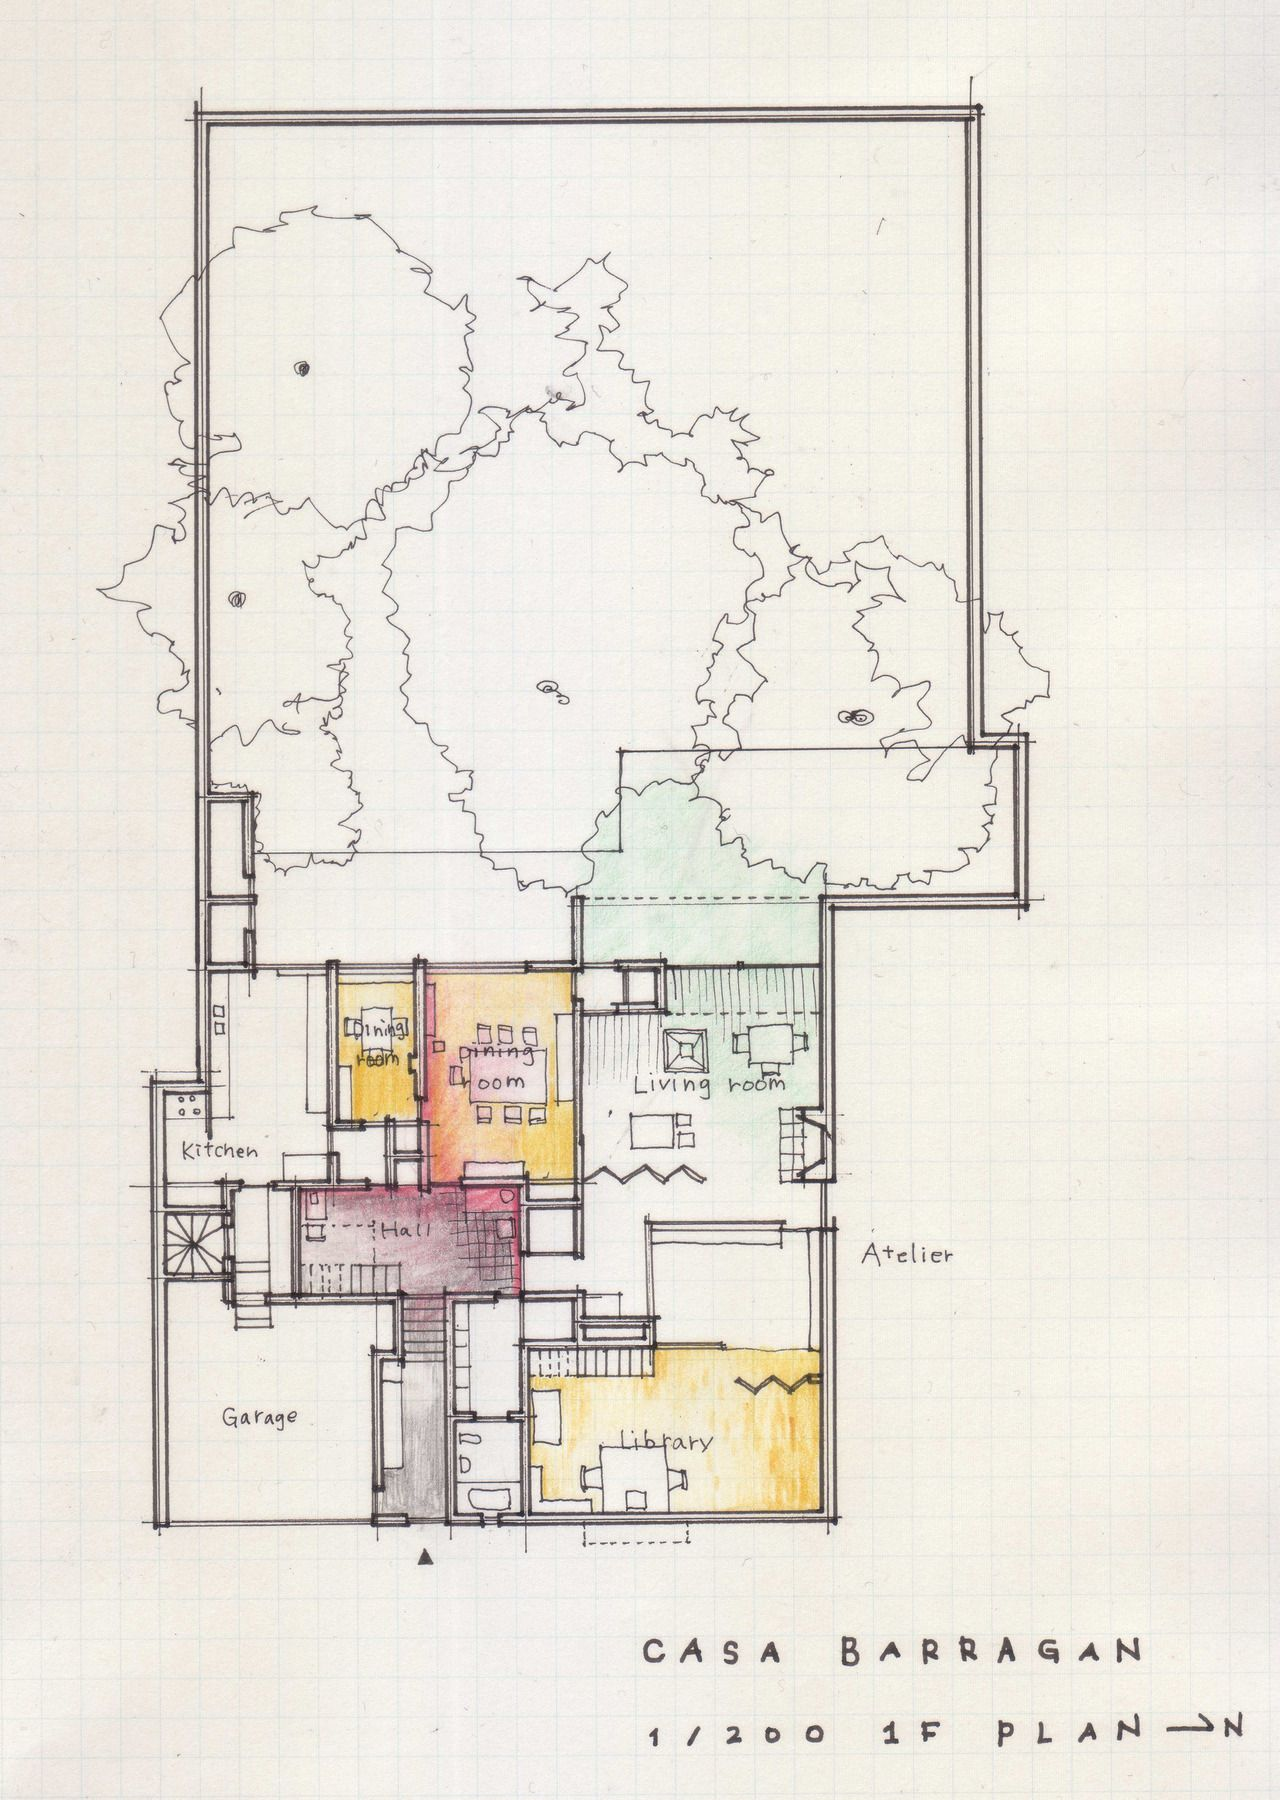 a floor plan a day keeps the doctor away luis barragan casa a floor plan a day keeps the doctor away luis barragan casa barragan